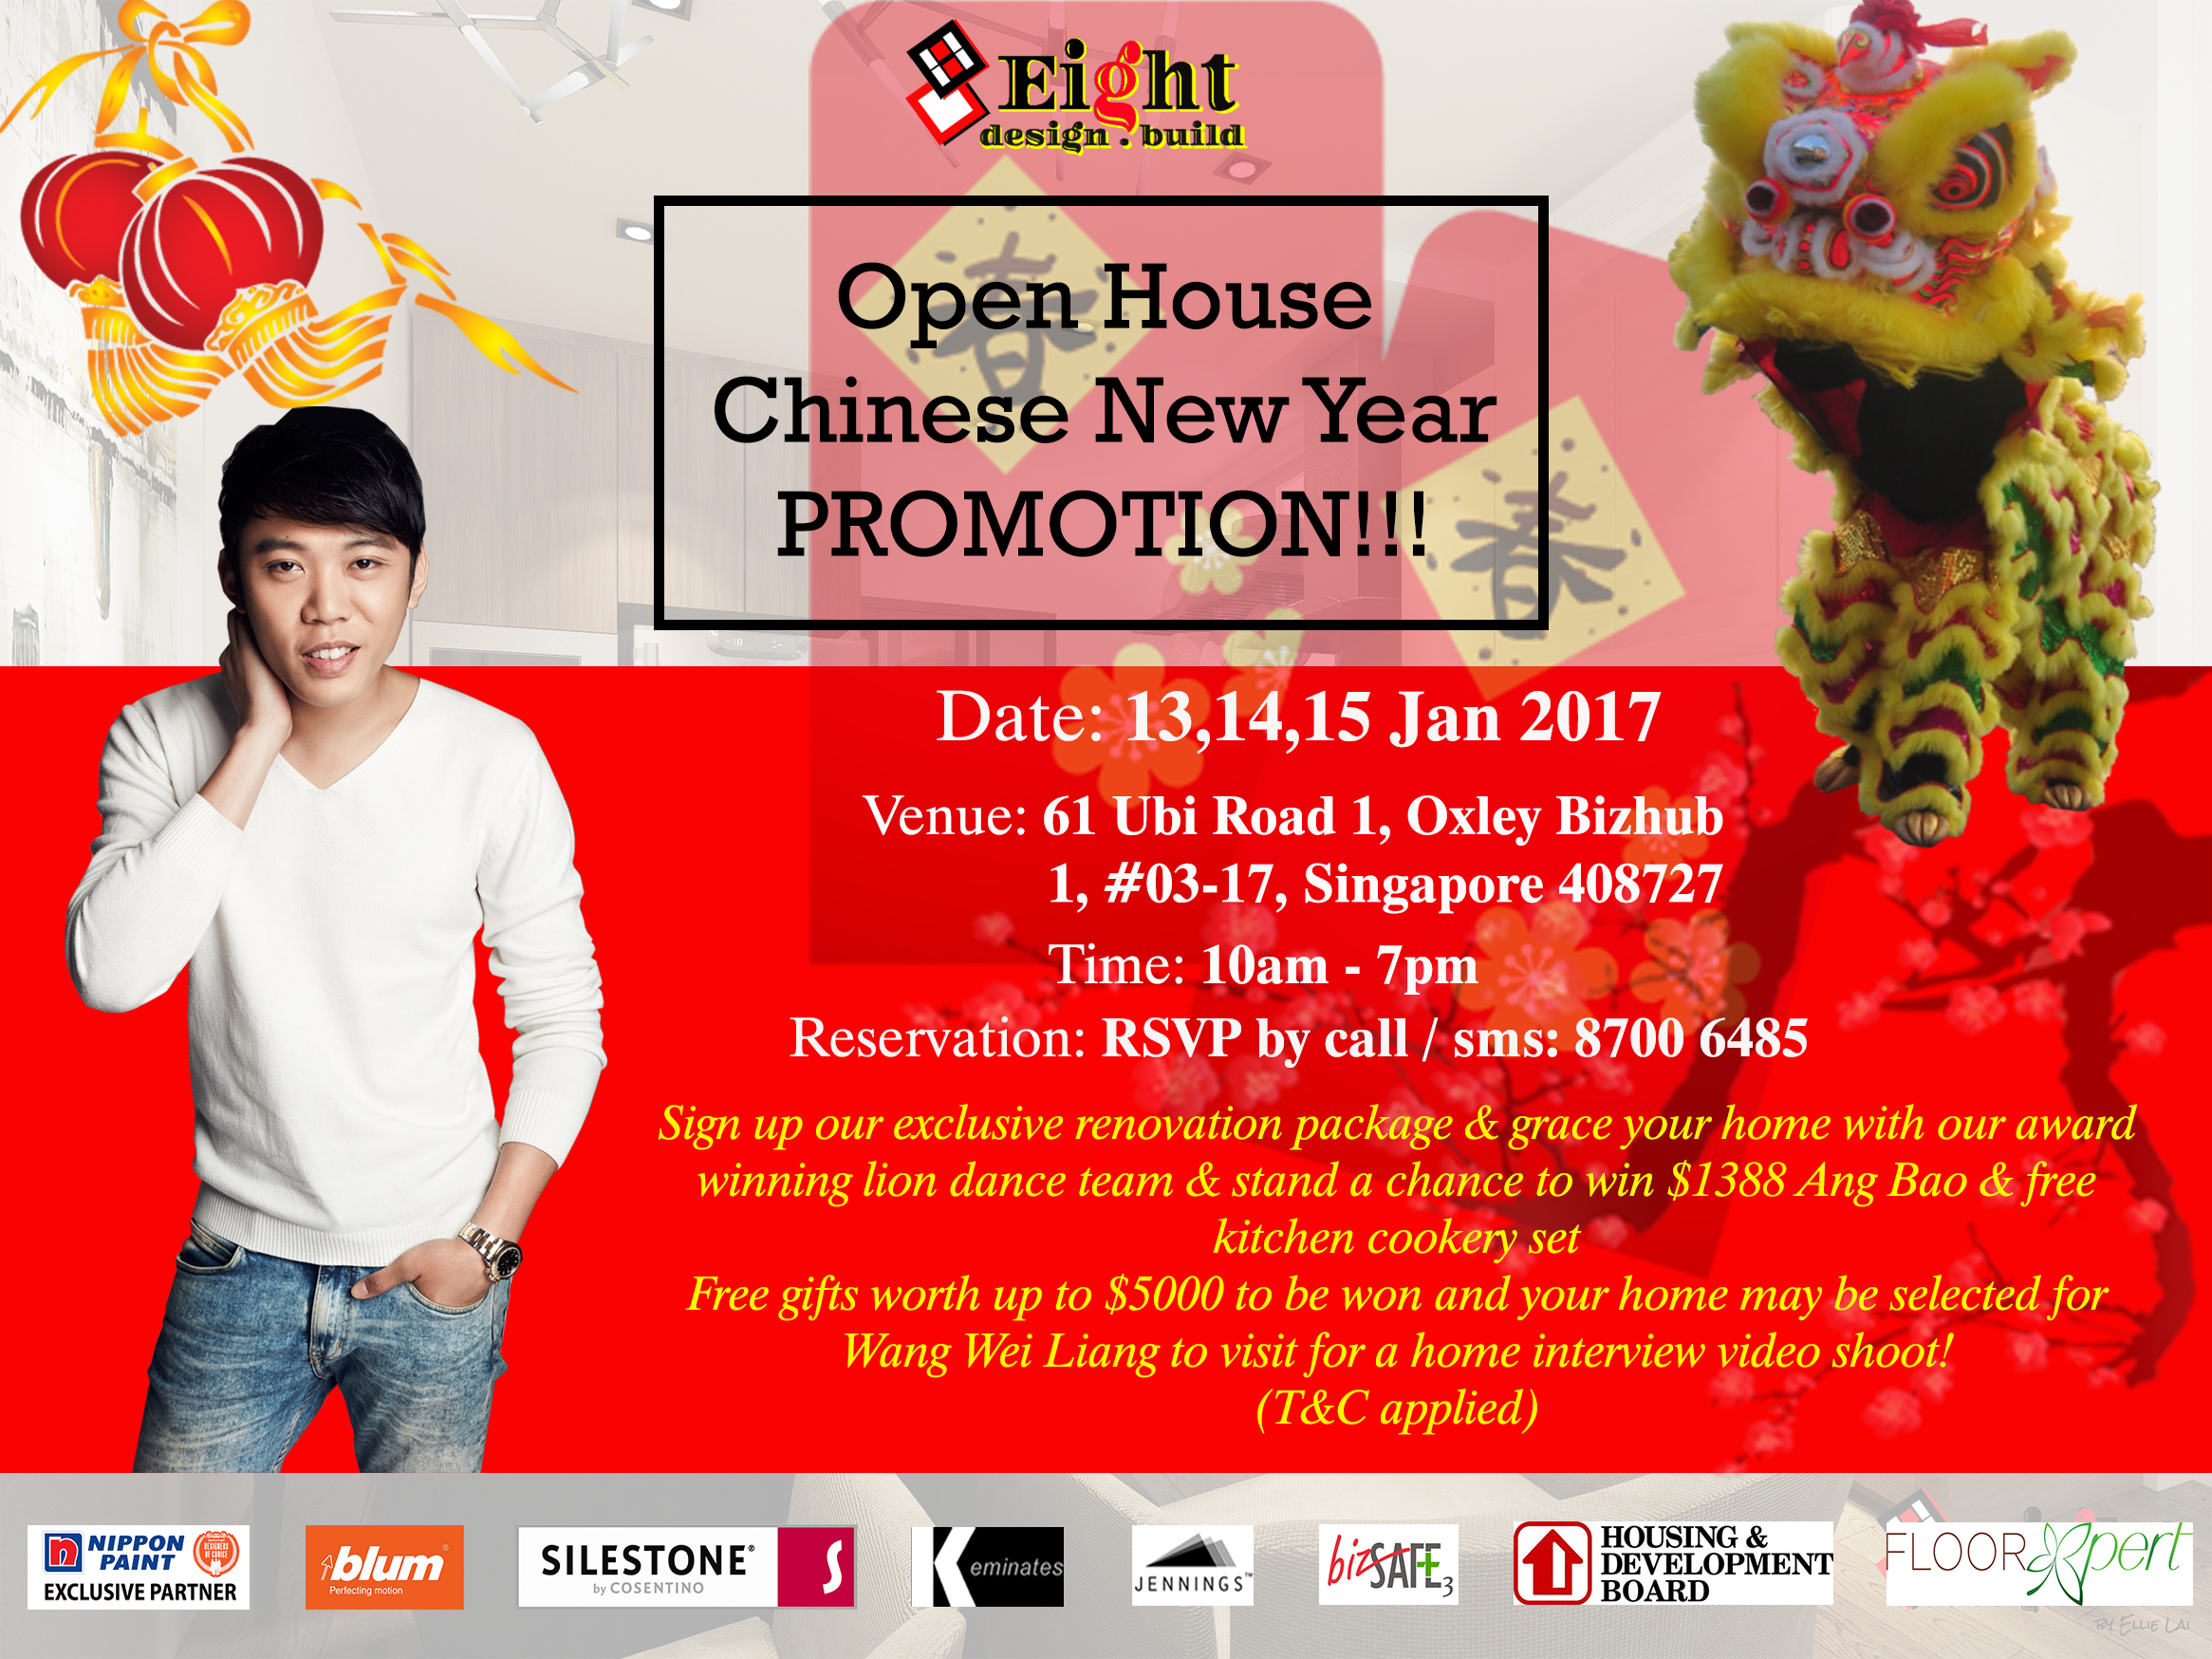 cny-open-house-promotion-r2